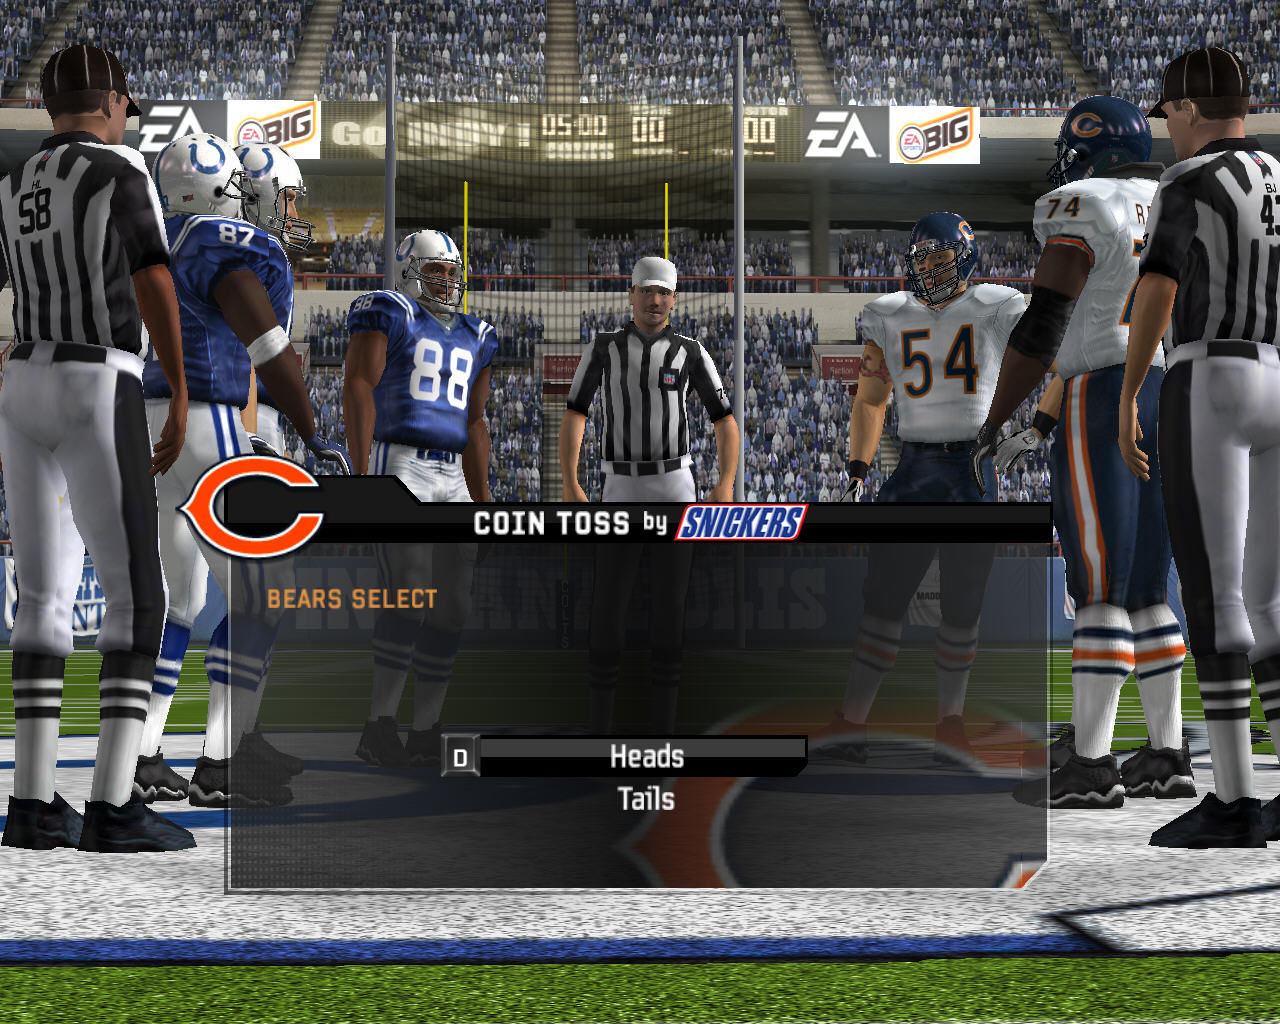 Madden NFL 08 Windows Game starts with a coin toss